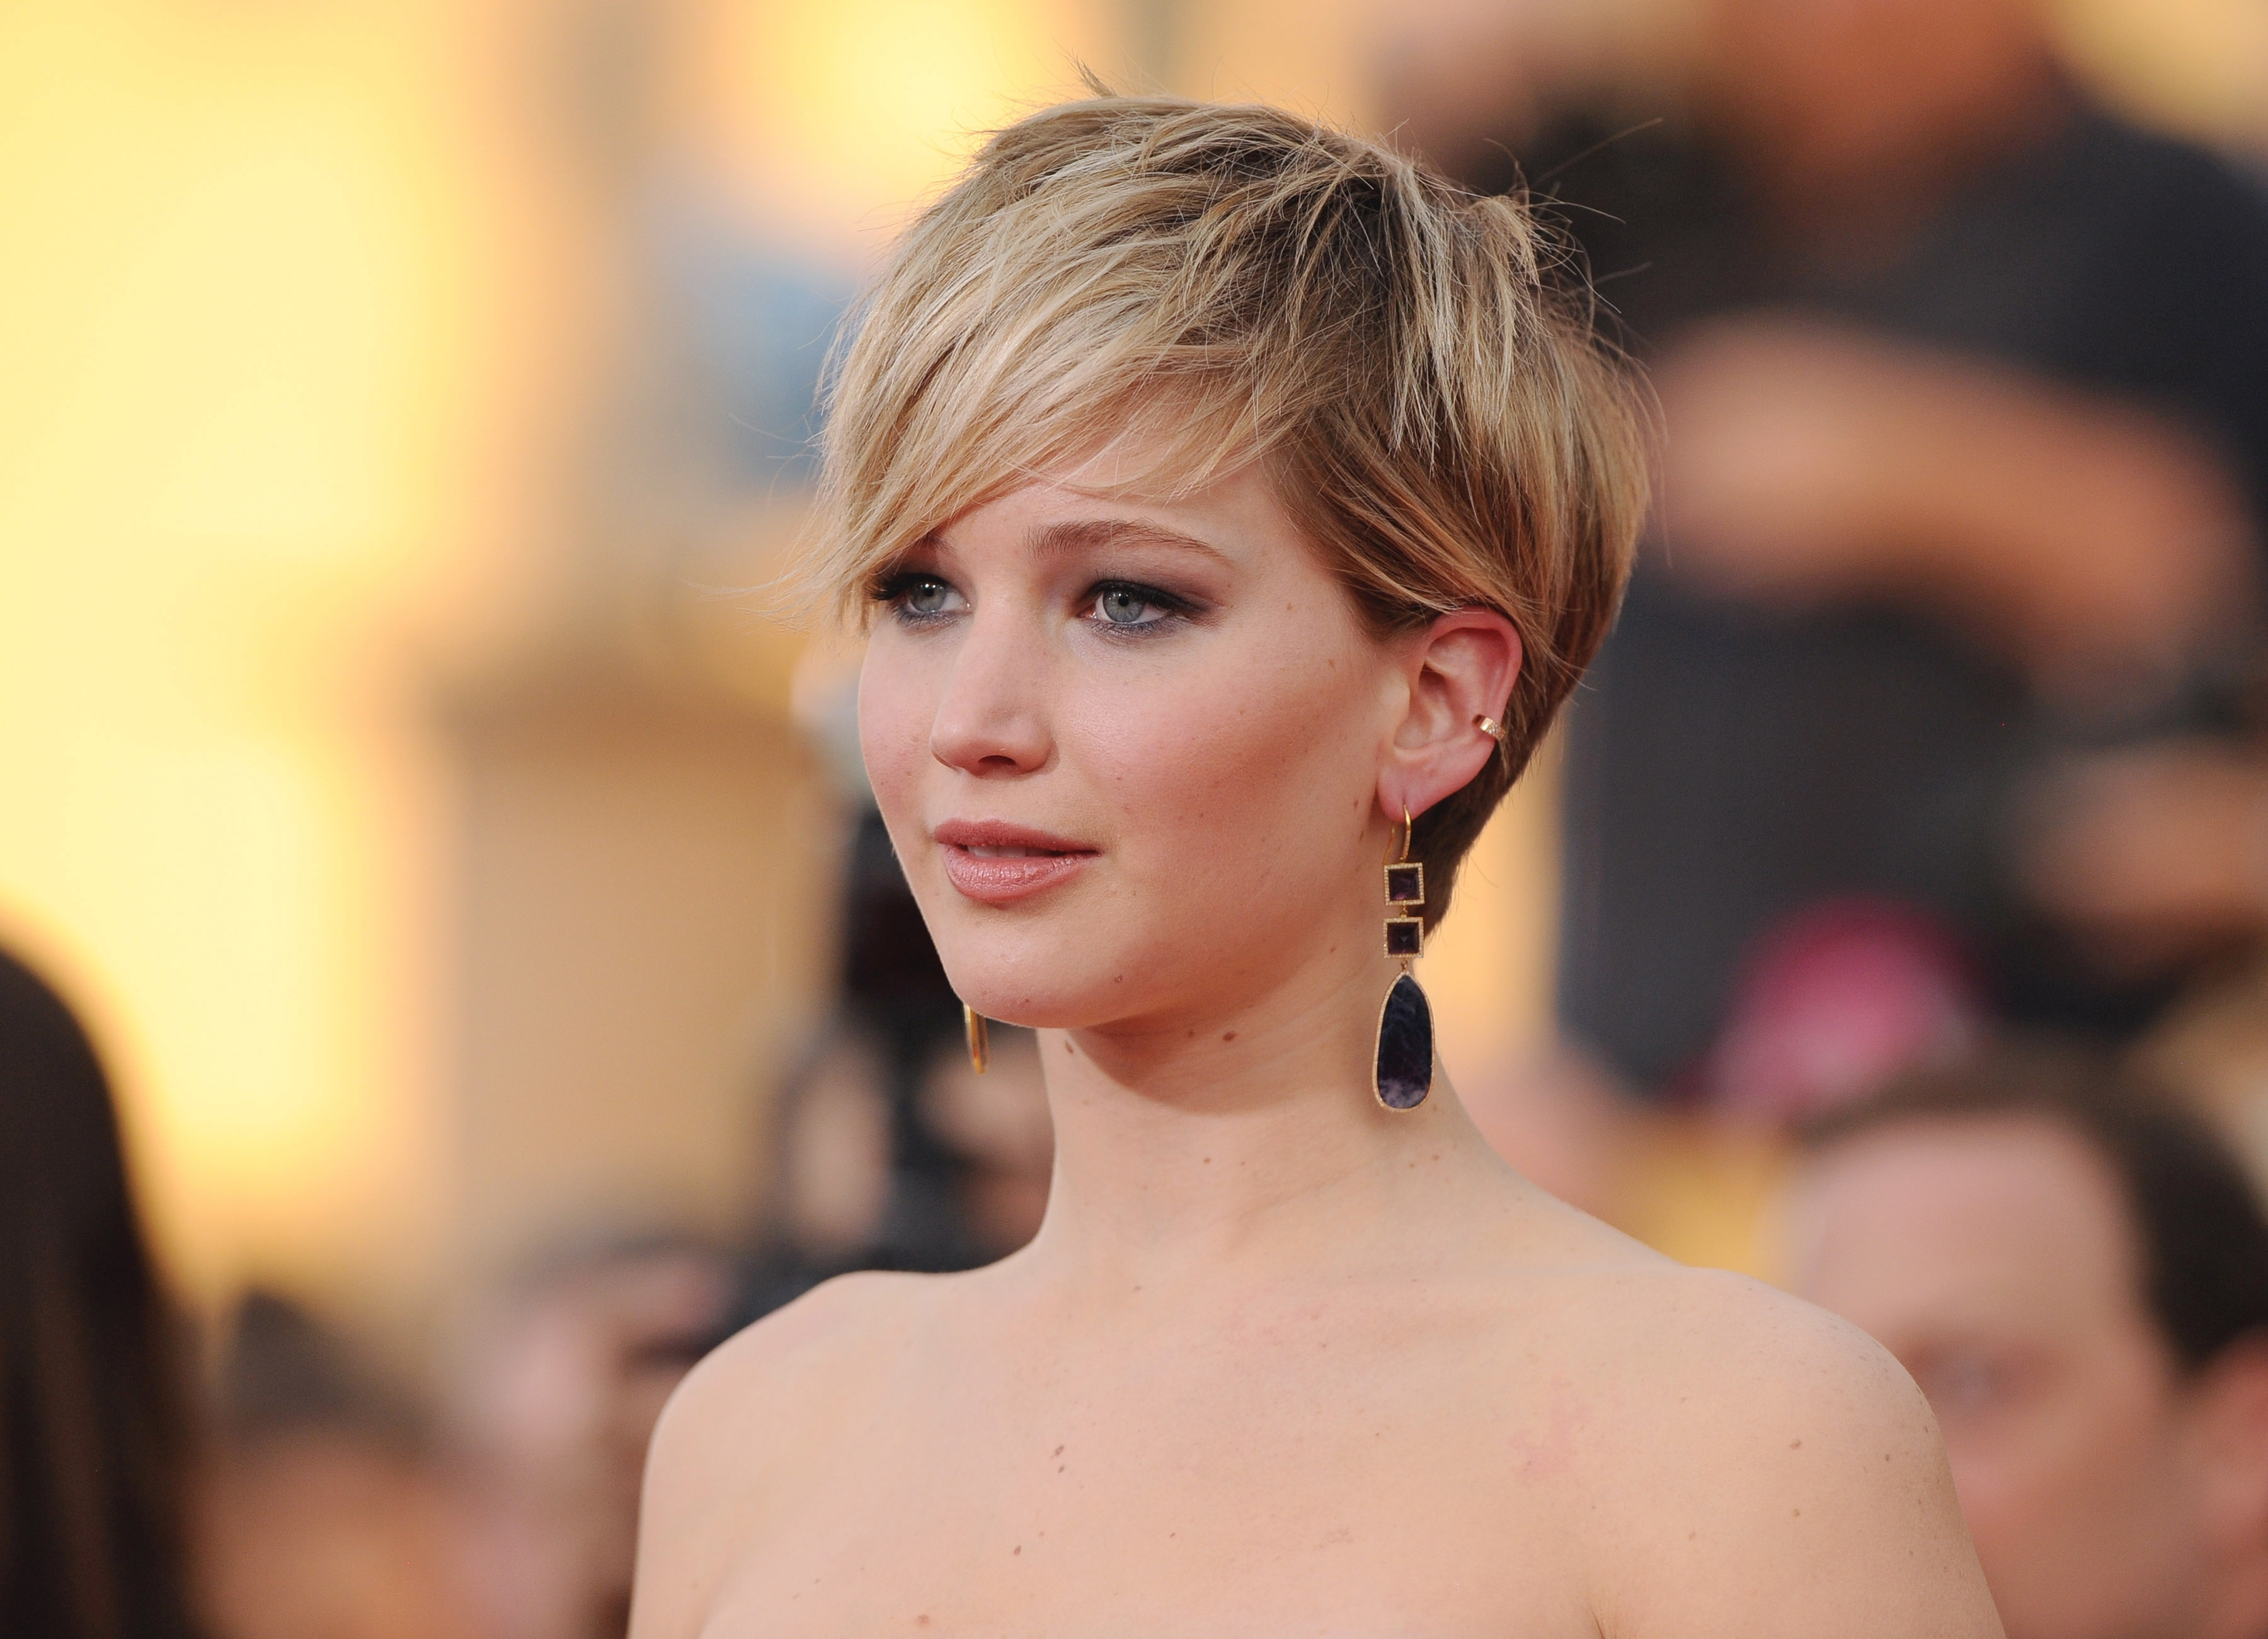 Short Pixie Haircuts For Thick Hair - Short And Cuts Hairstyles regarding Short Haircuts For Thick Hair Pixie